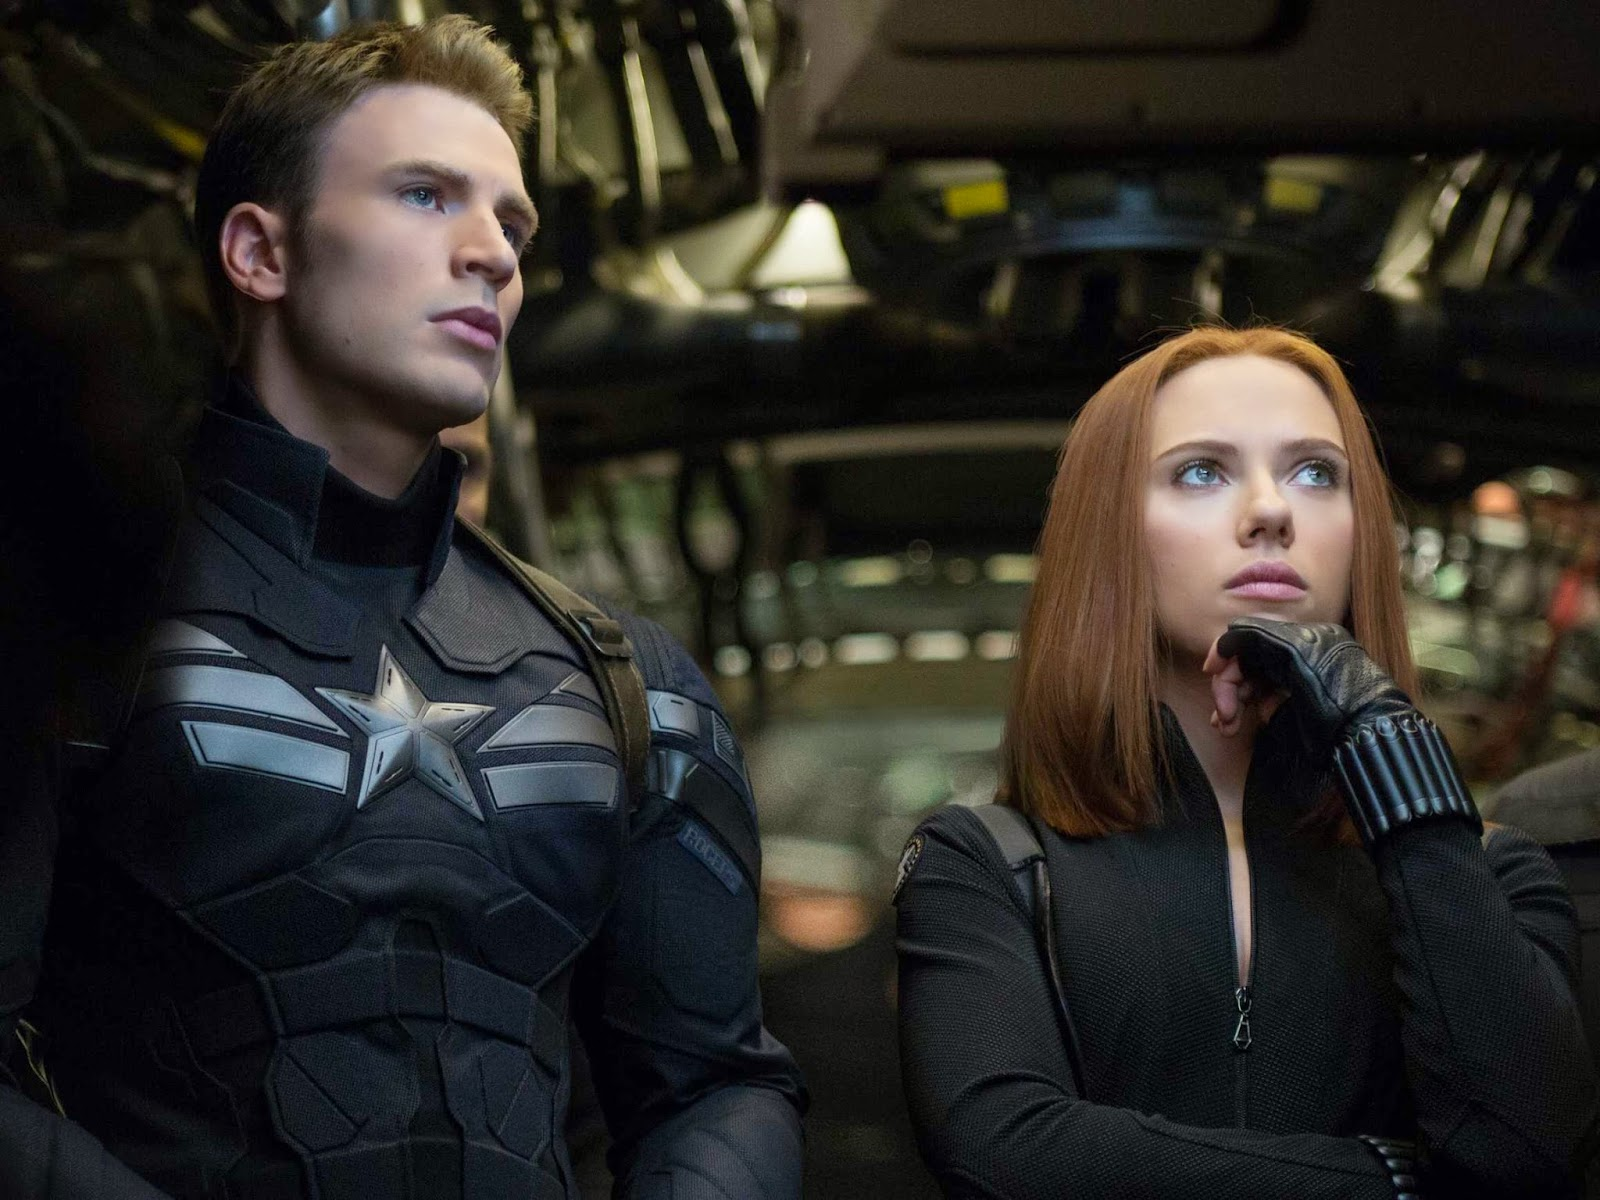 Movie review, rating, trailer and photos of Captain America: The Winter Soldier